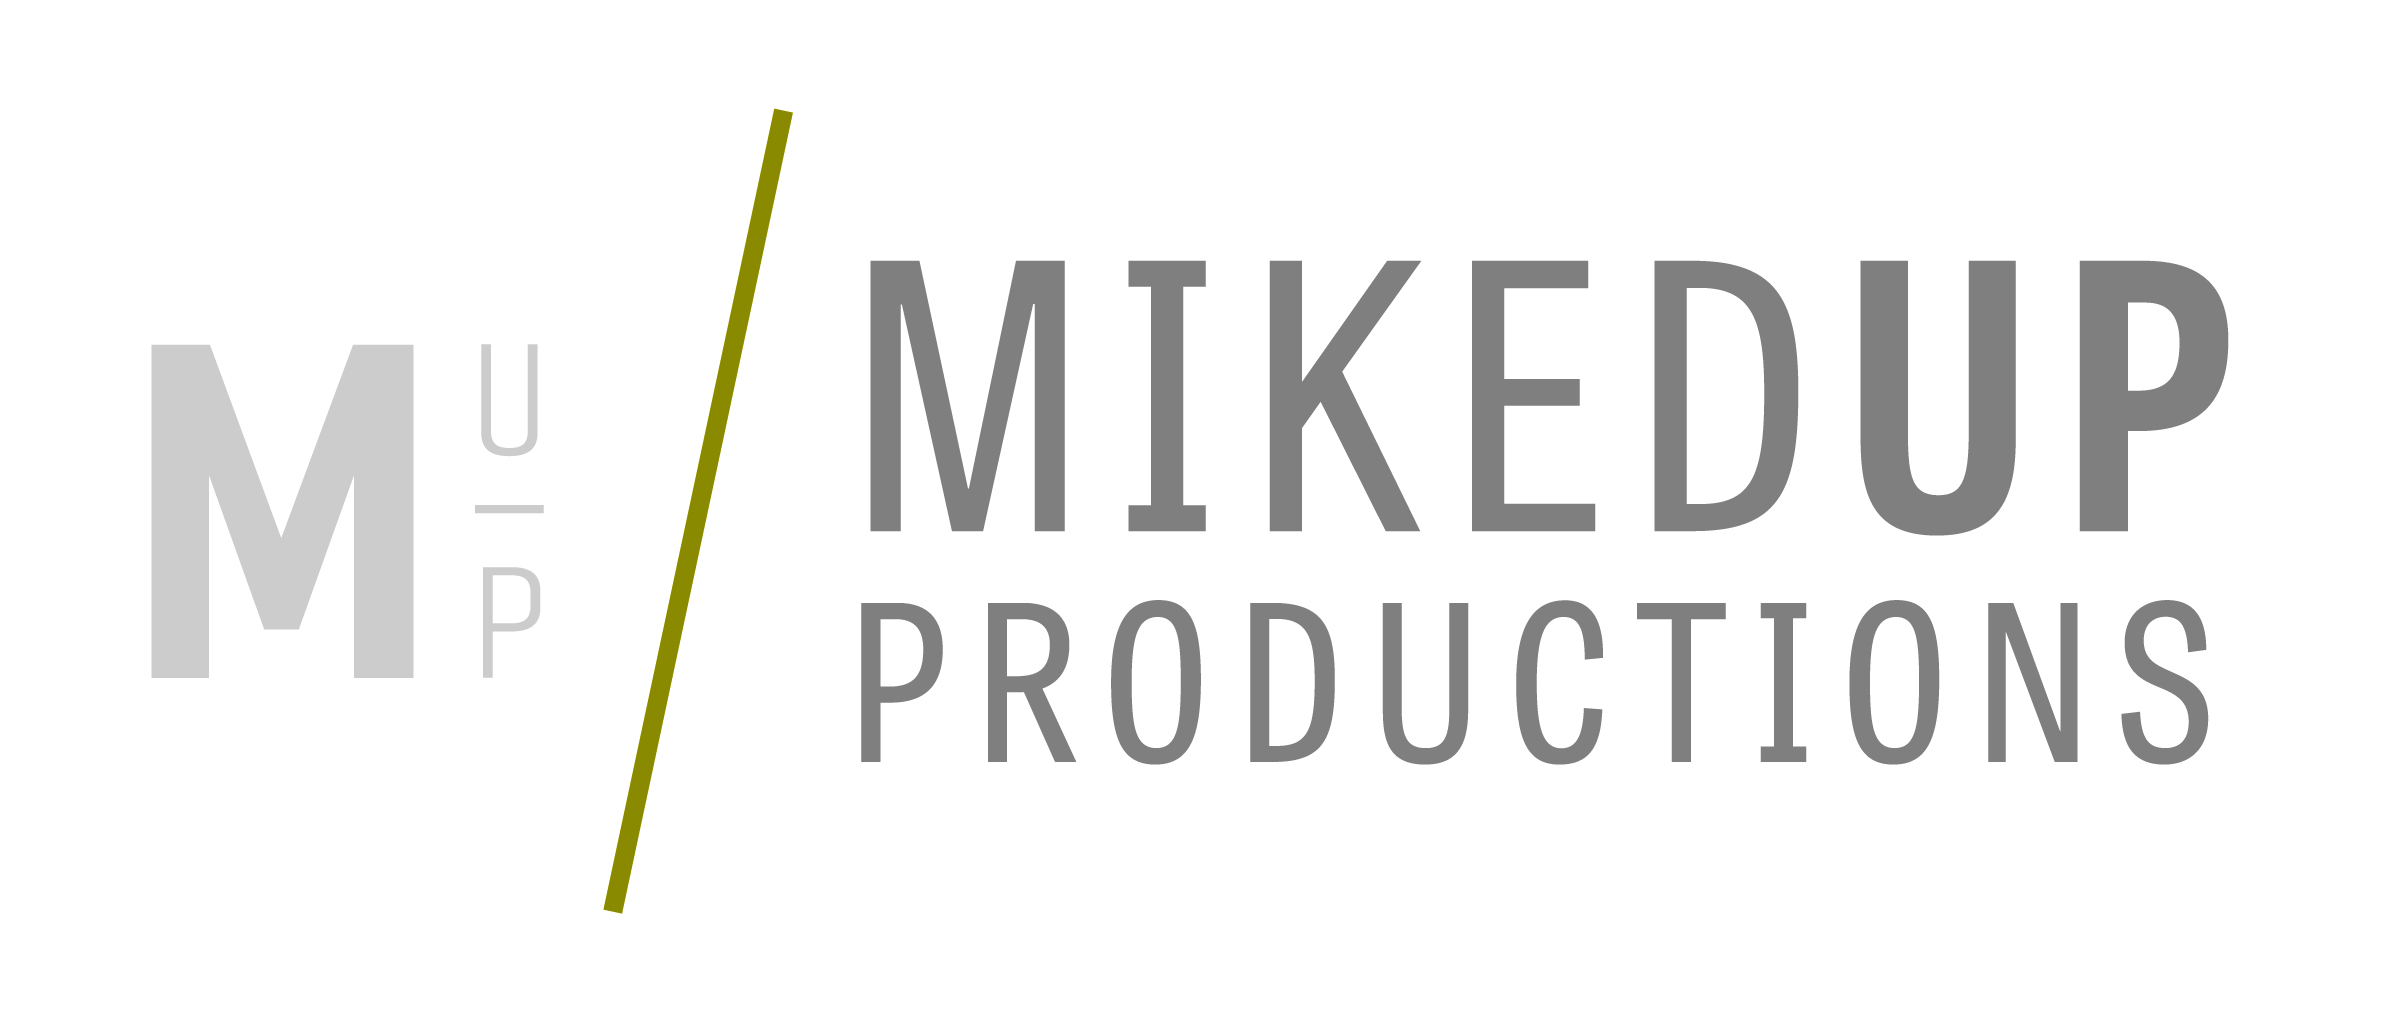 Miked Up Productions